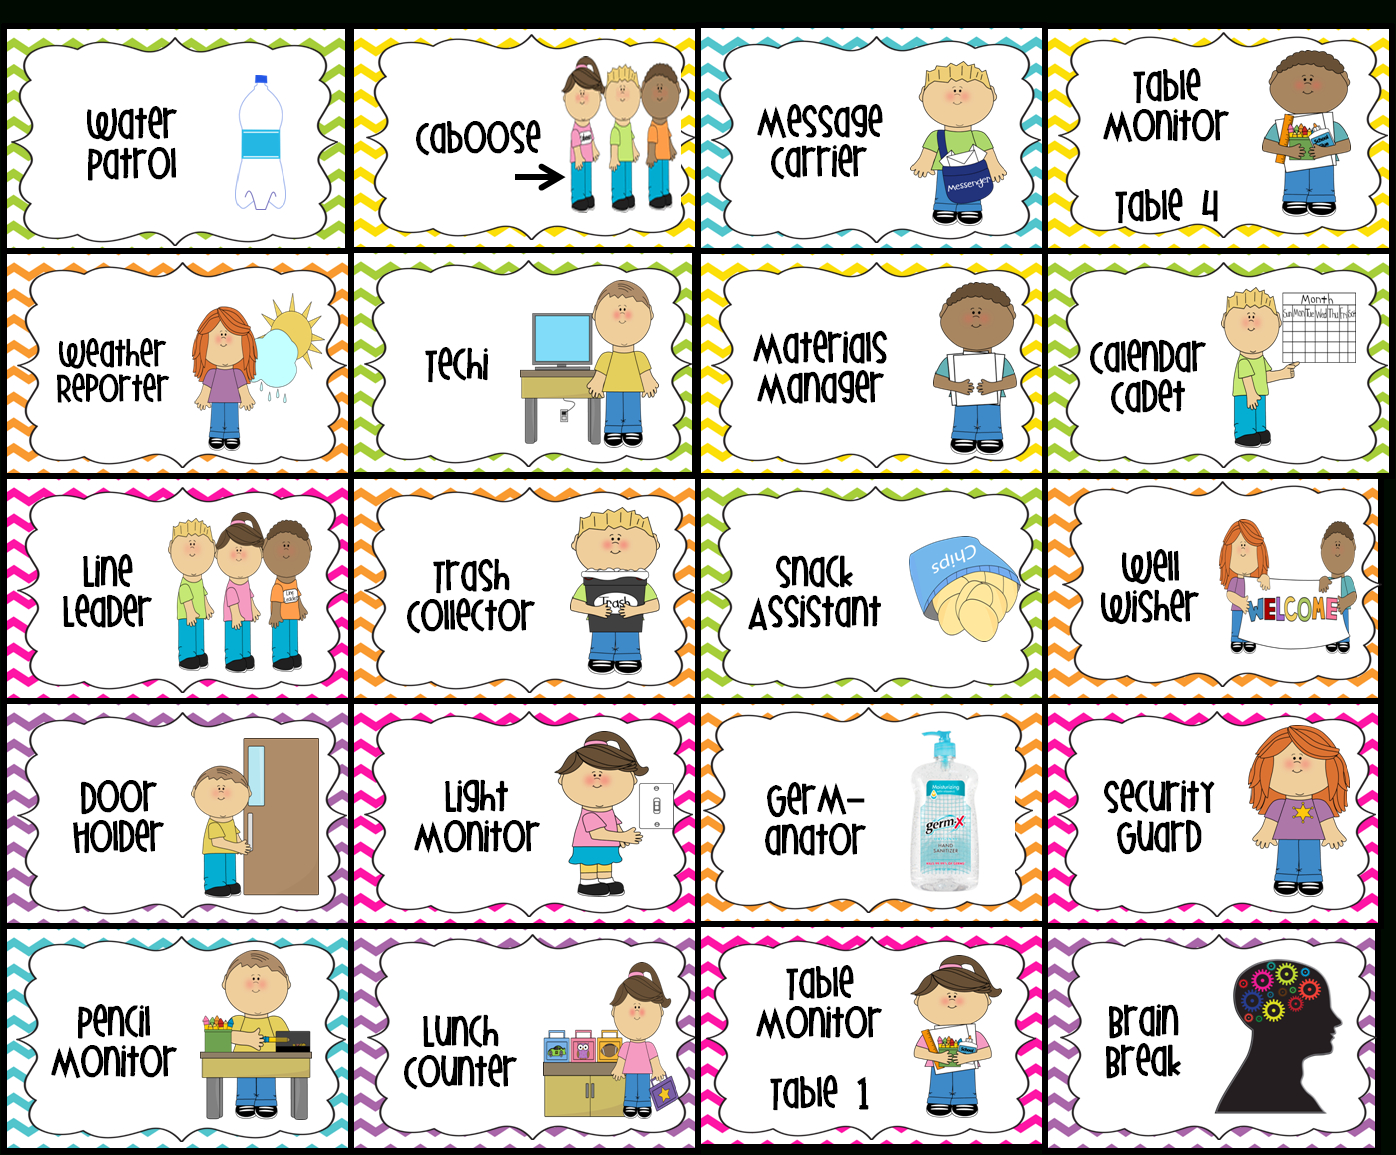 Classroom Jobs Printable | Water Patrol (2), Caboose, Message - Free Printable Preschool Job Chart Pictures